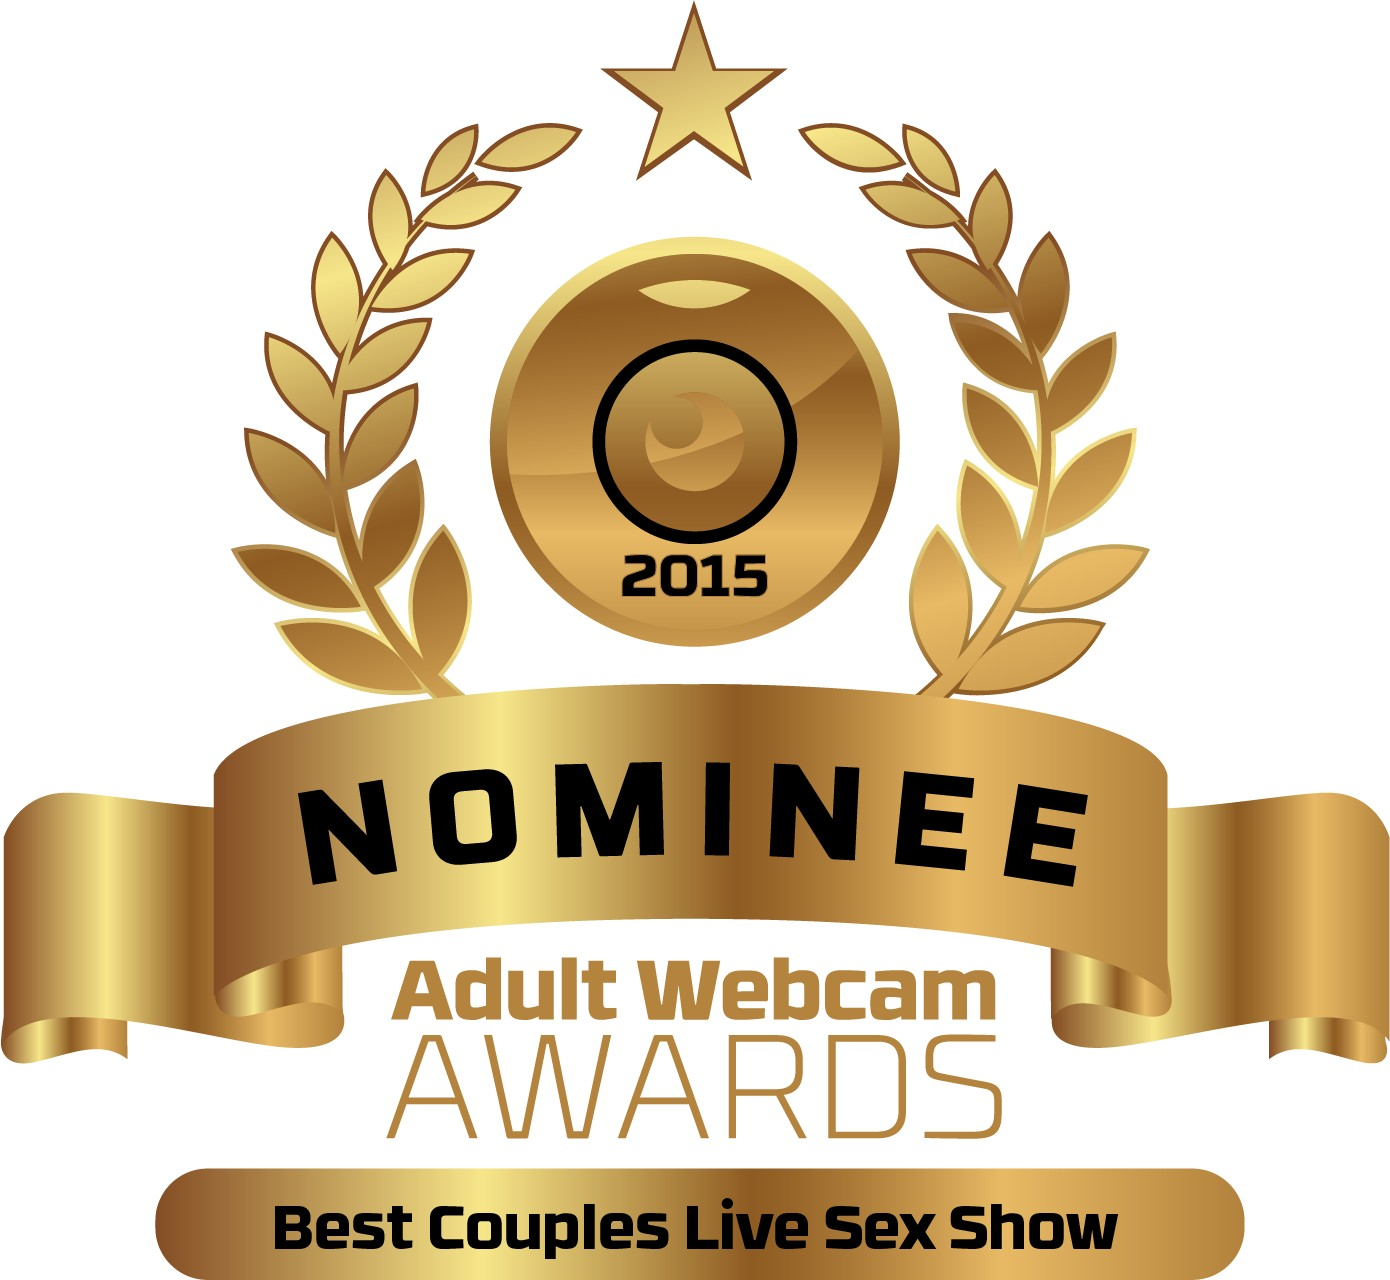 Best live couples webcam show nominee